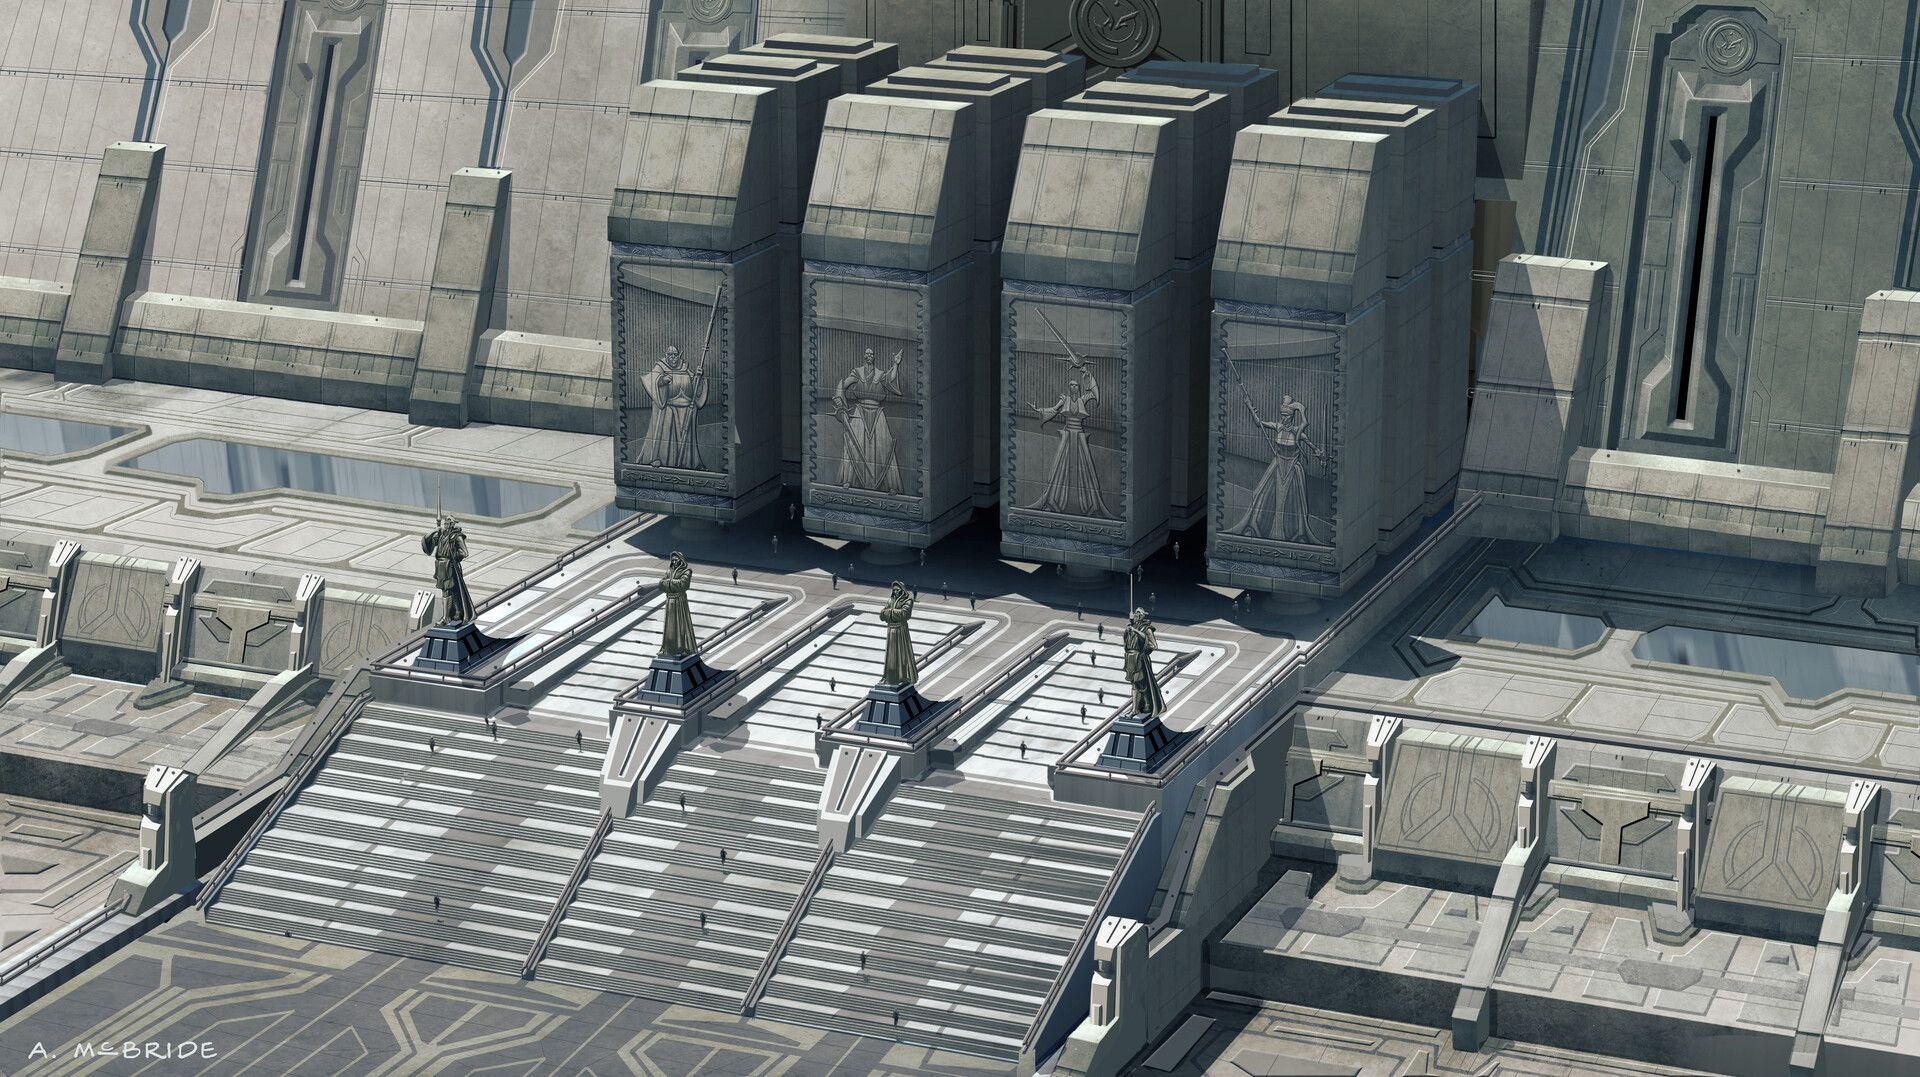 Star Wars Revenge Of The Sith Jedi Temple Ground Entrance Concept By Aaron Mcbride Star Wars Concept Art Star Wars Characters Pictures Star Wars